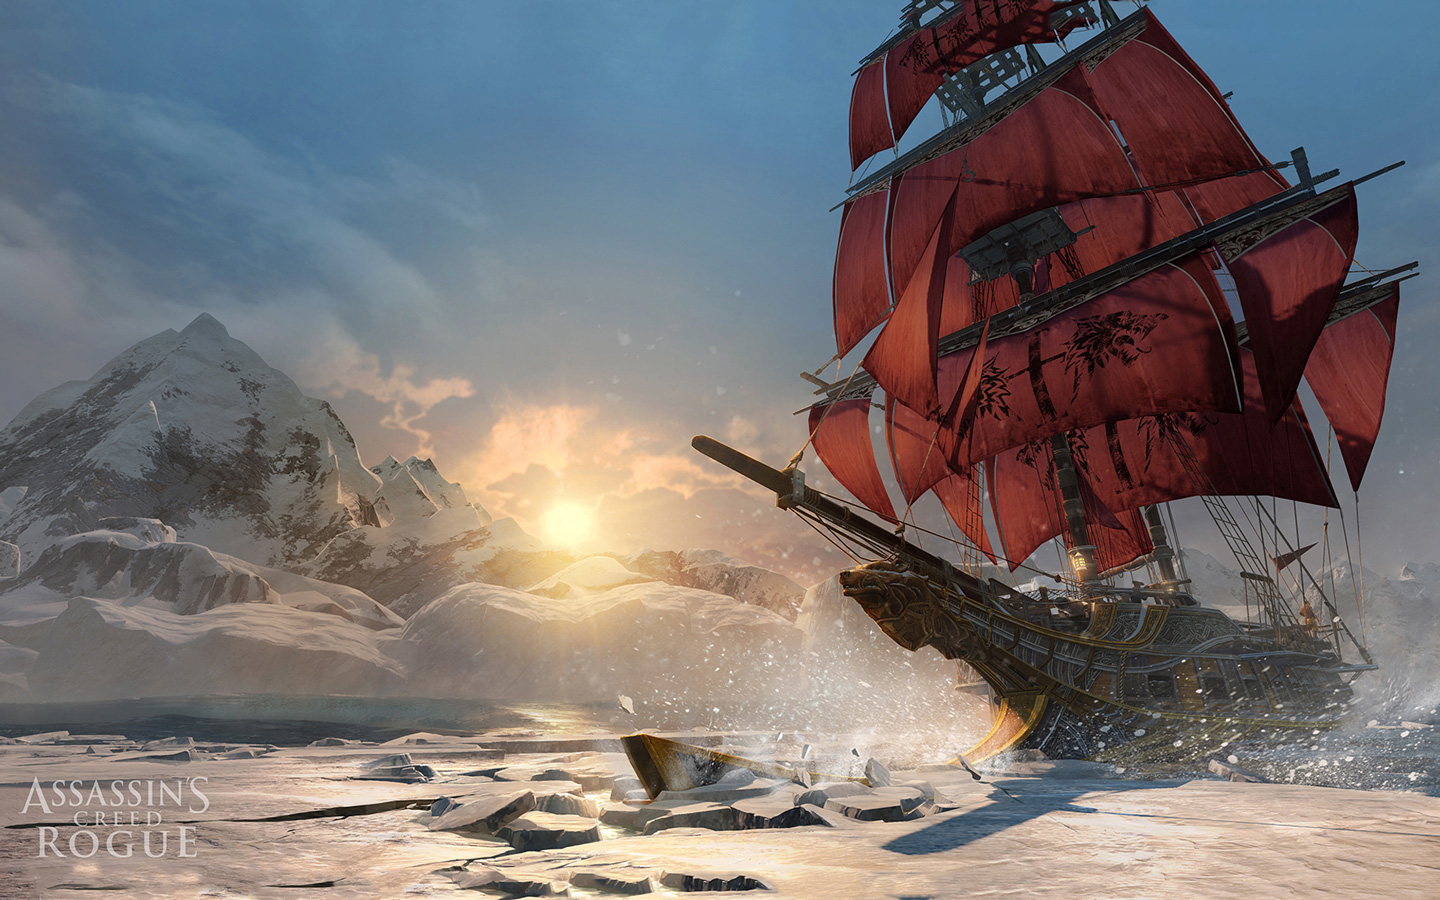 Assassin's Creed: Rogue Wallpaper in 1440x900